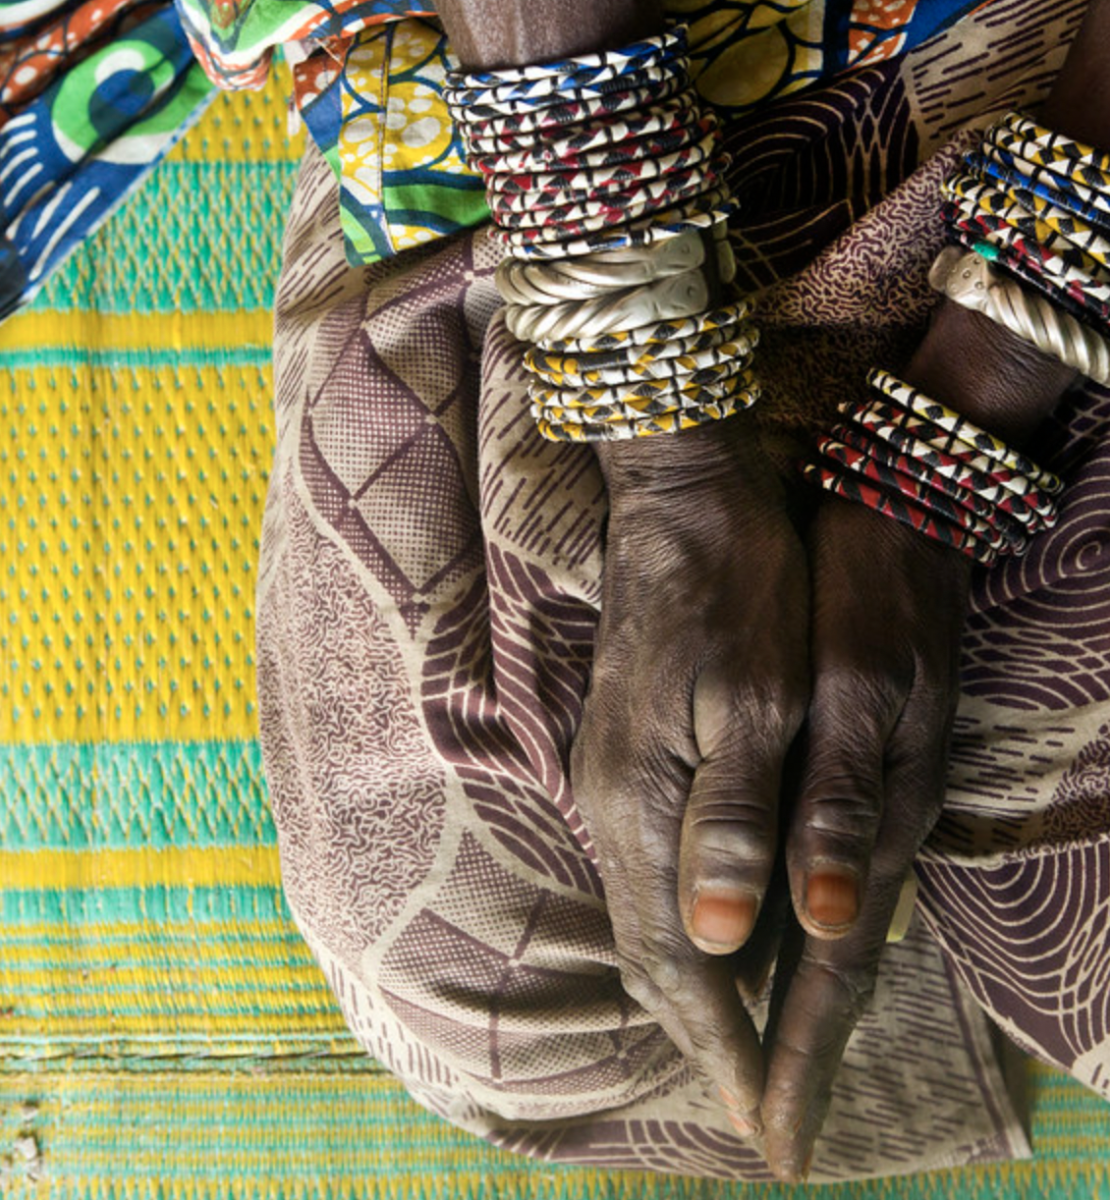 A woman's hands, with several bracelets, rest on her knees on top of a bright colored cloth.